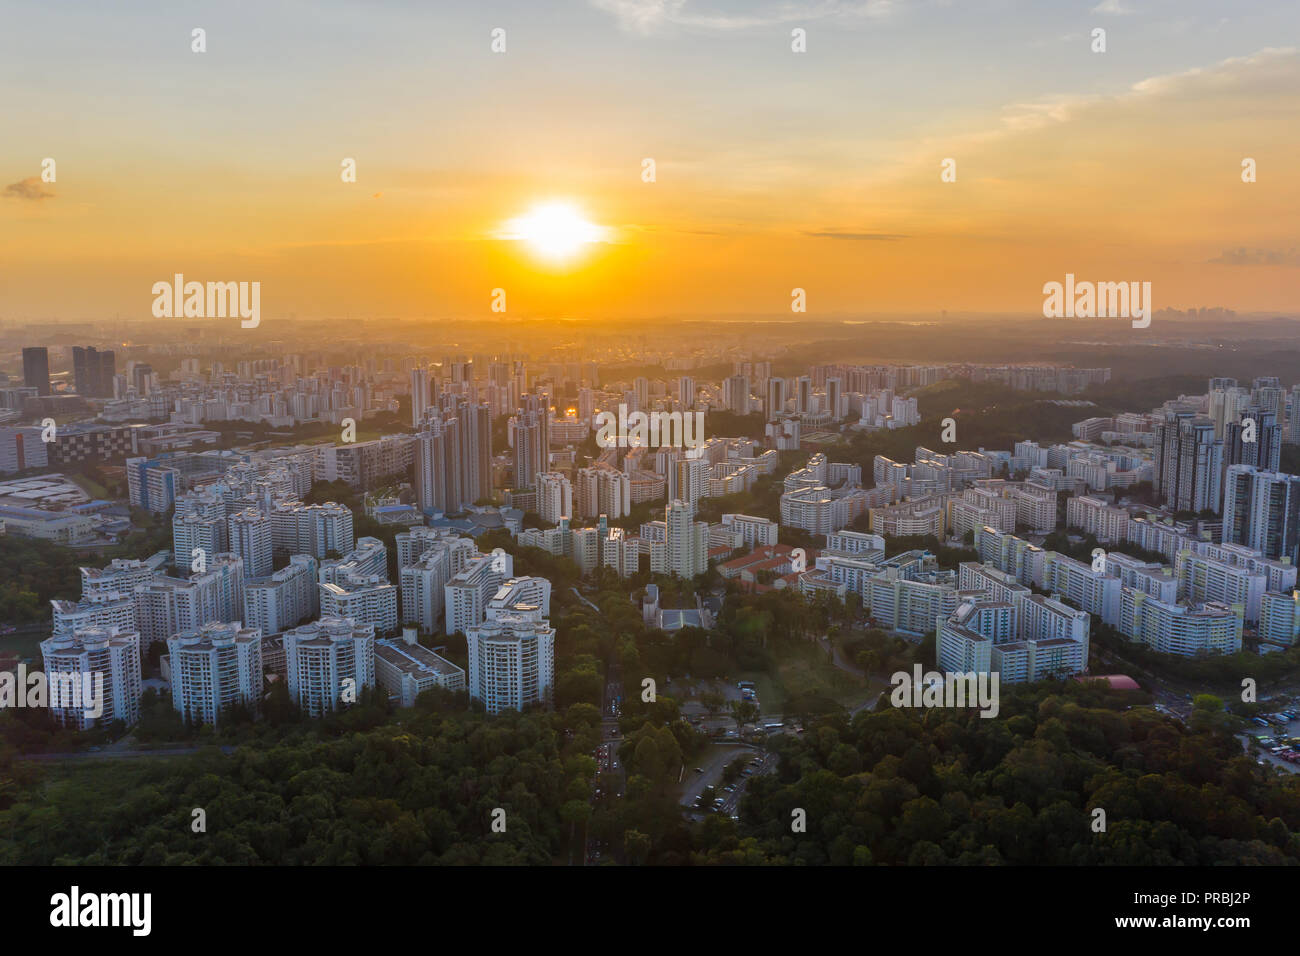 Aerial view of Bukit Batok area during sunset timing in Singapore - Stock Image